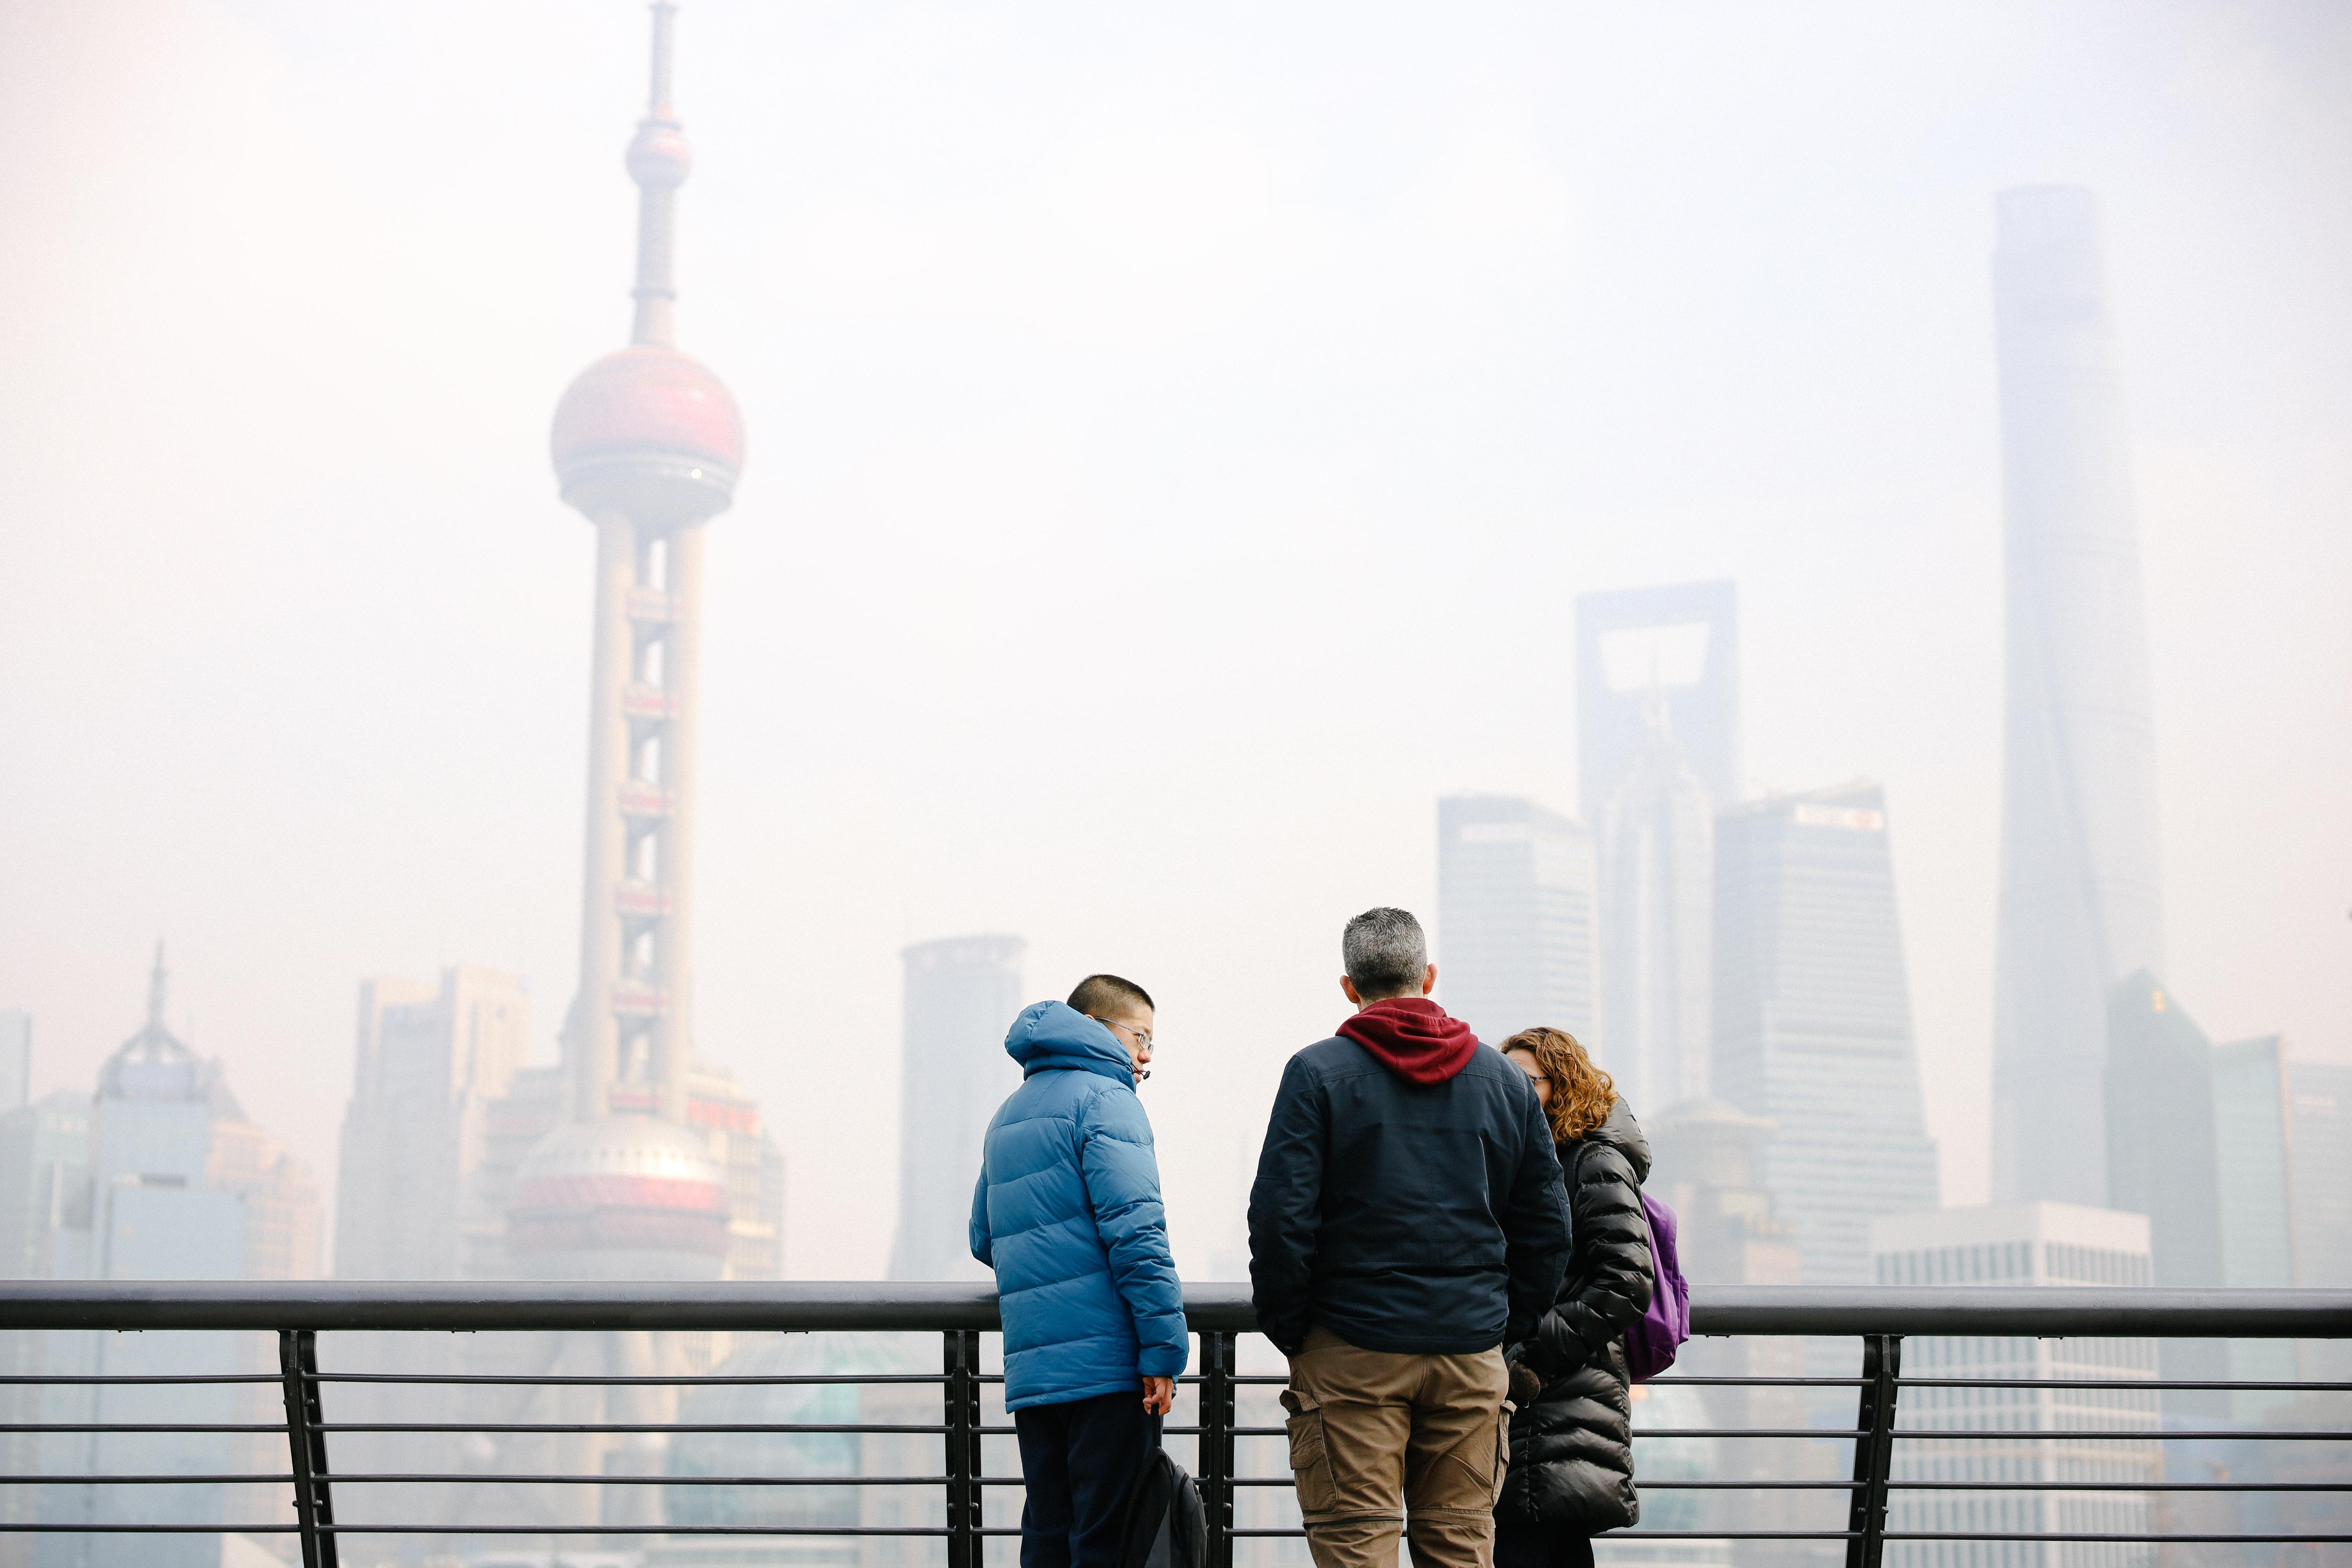 Sightseeing on a Budget in Shanghai